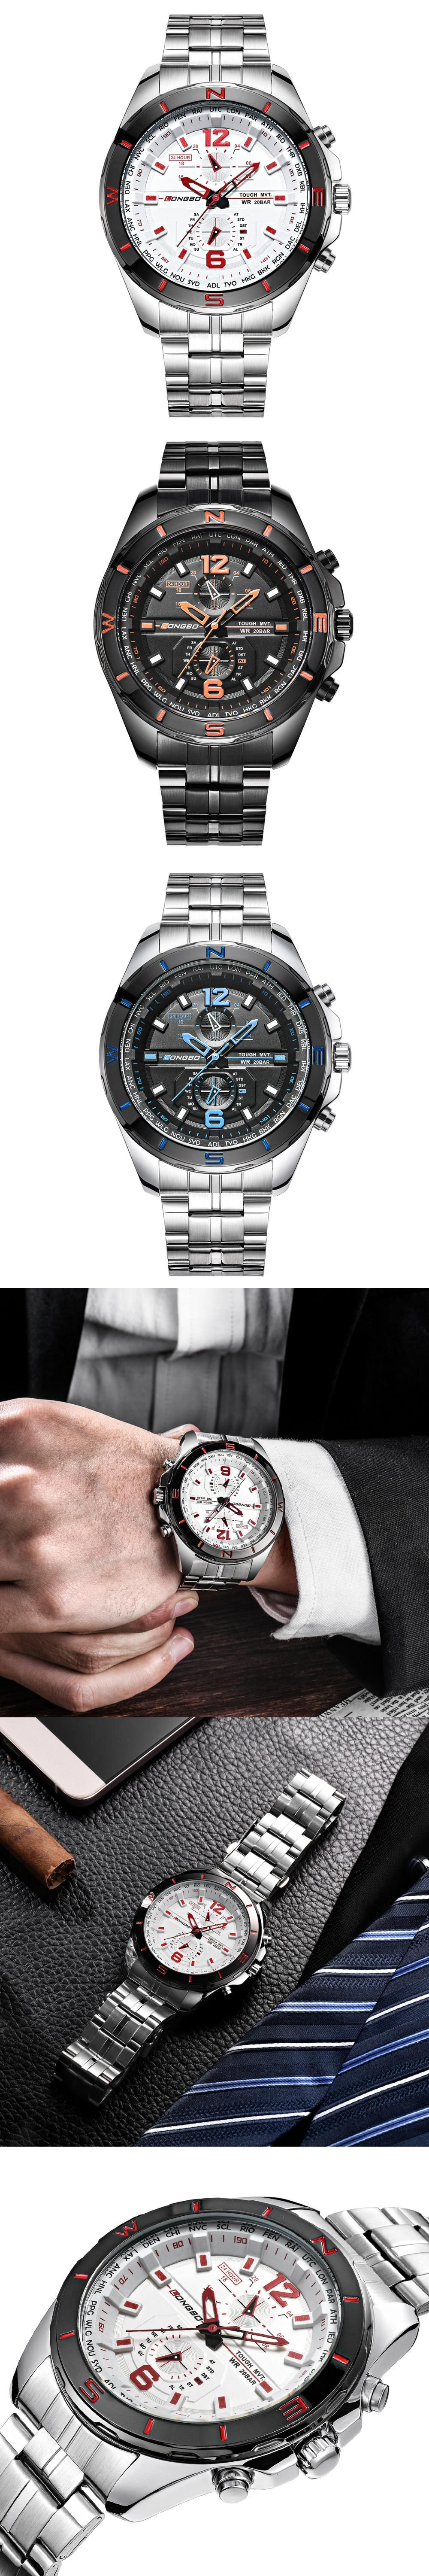 lightbox online open image heritage front boutique in waterproof watches shop corniche